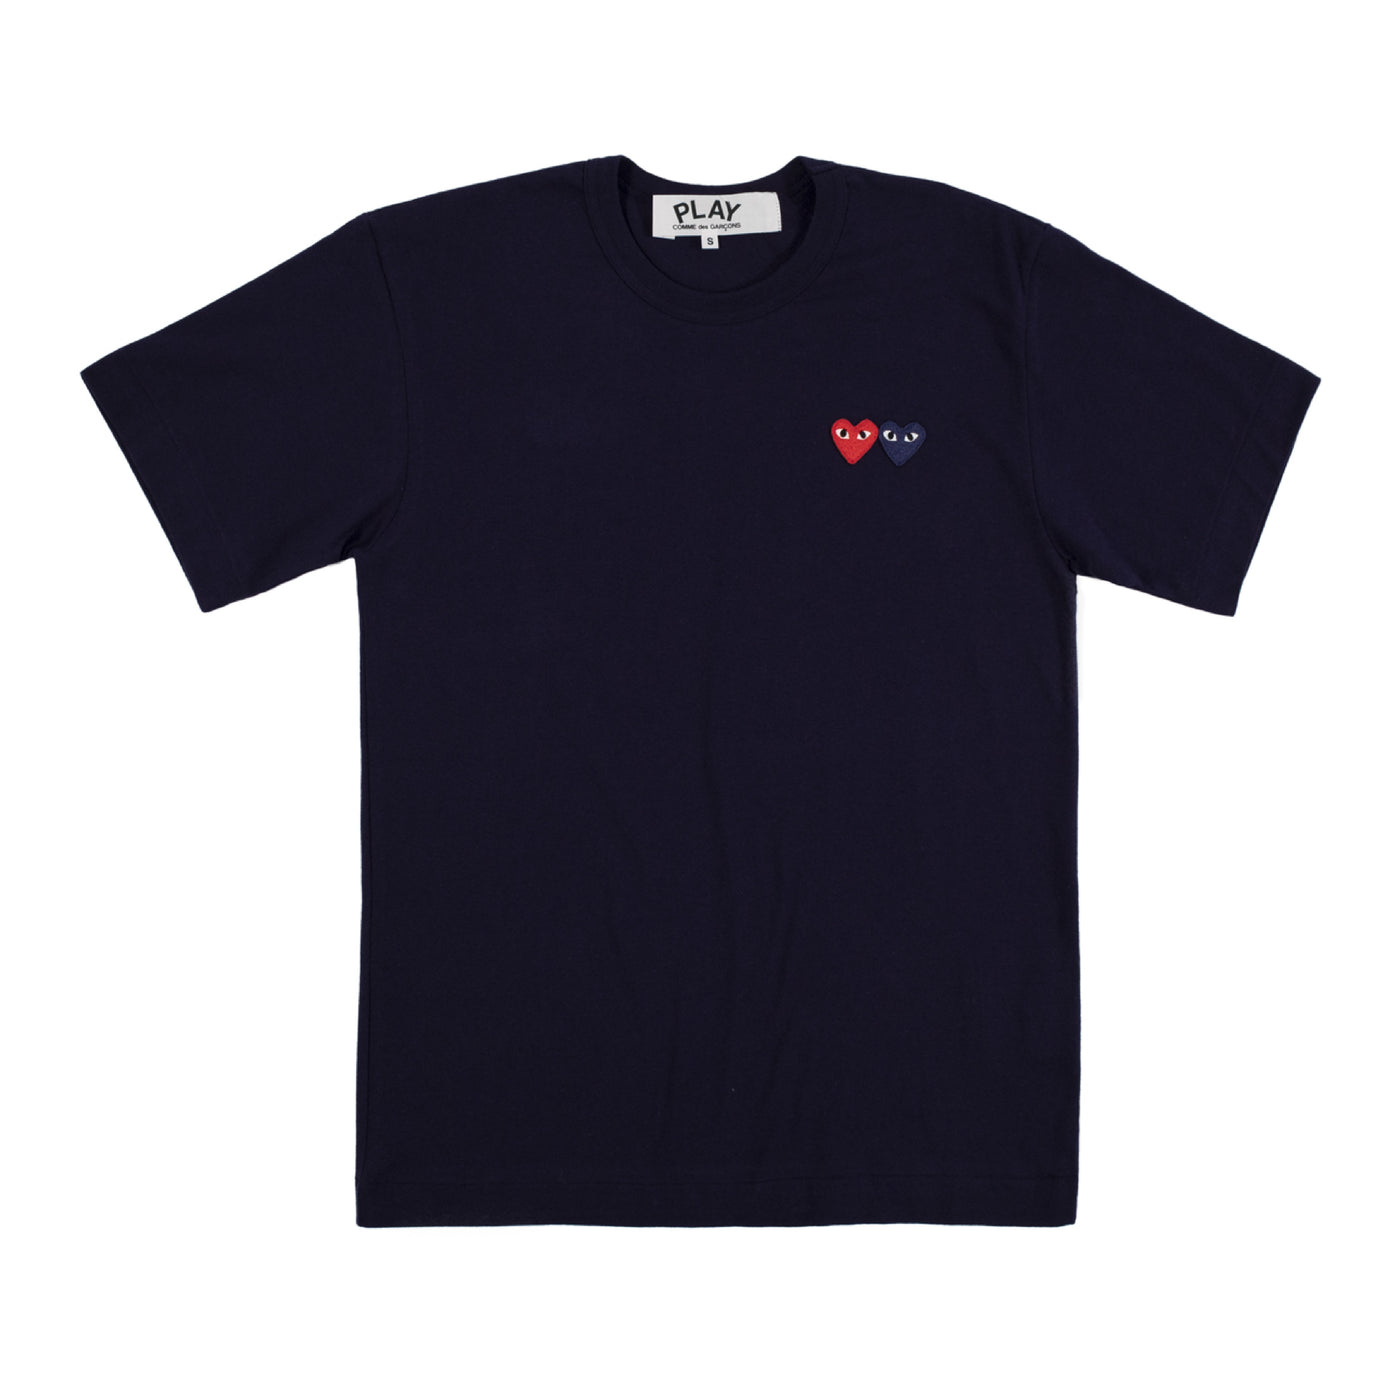 Load image into Gallery viewer, COMME DES GARCONS PLAY T-SHIRT WITH SMALL DOUBLE HEARTS NAVY